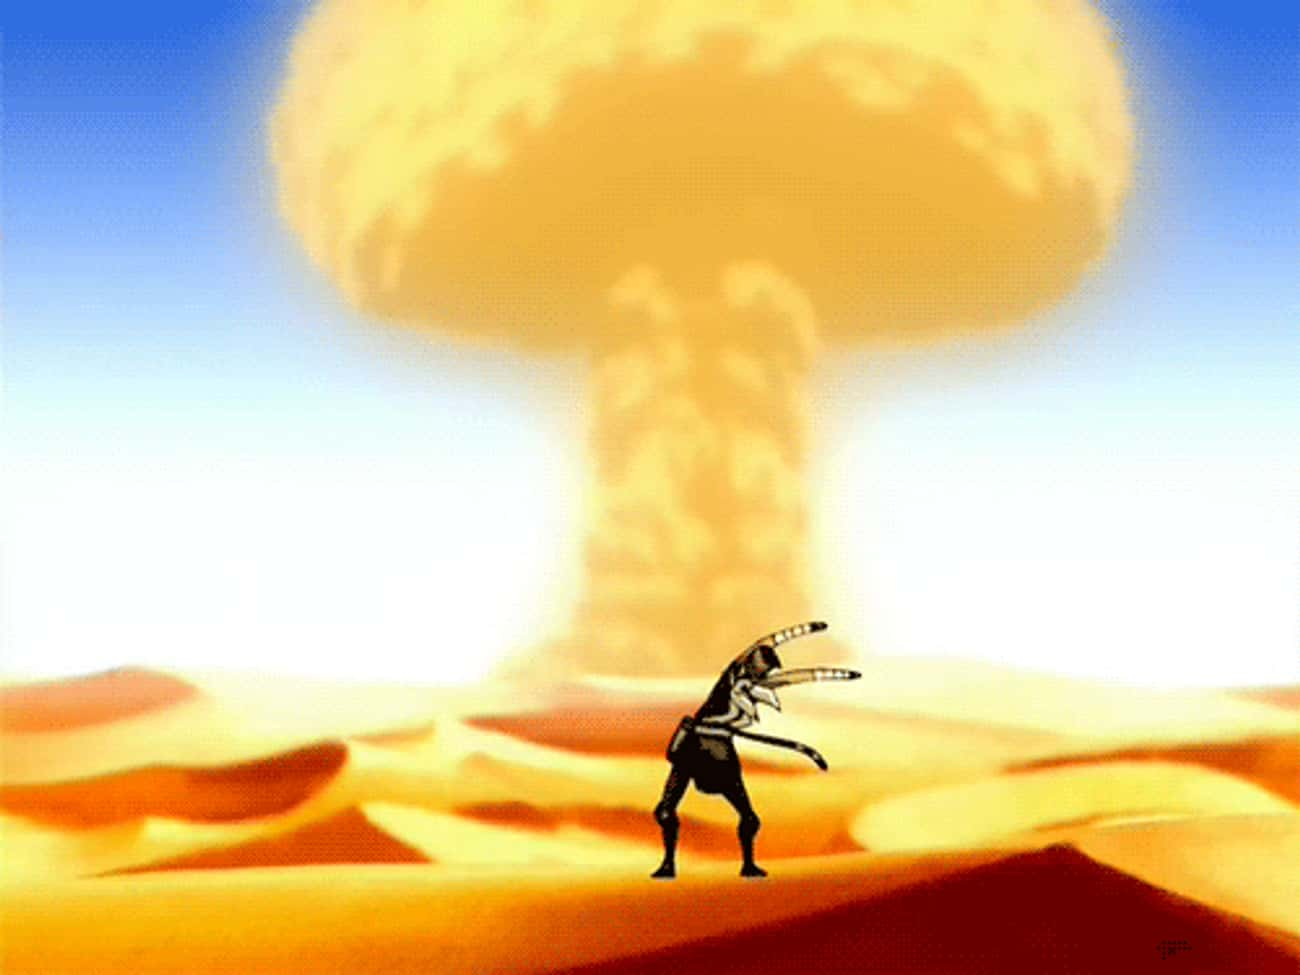 Giant Mushroom is listed (or ranked) 2 on the list The Best Sokka Quotes From 'Avatar: The Last Airbender'